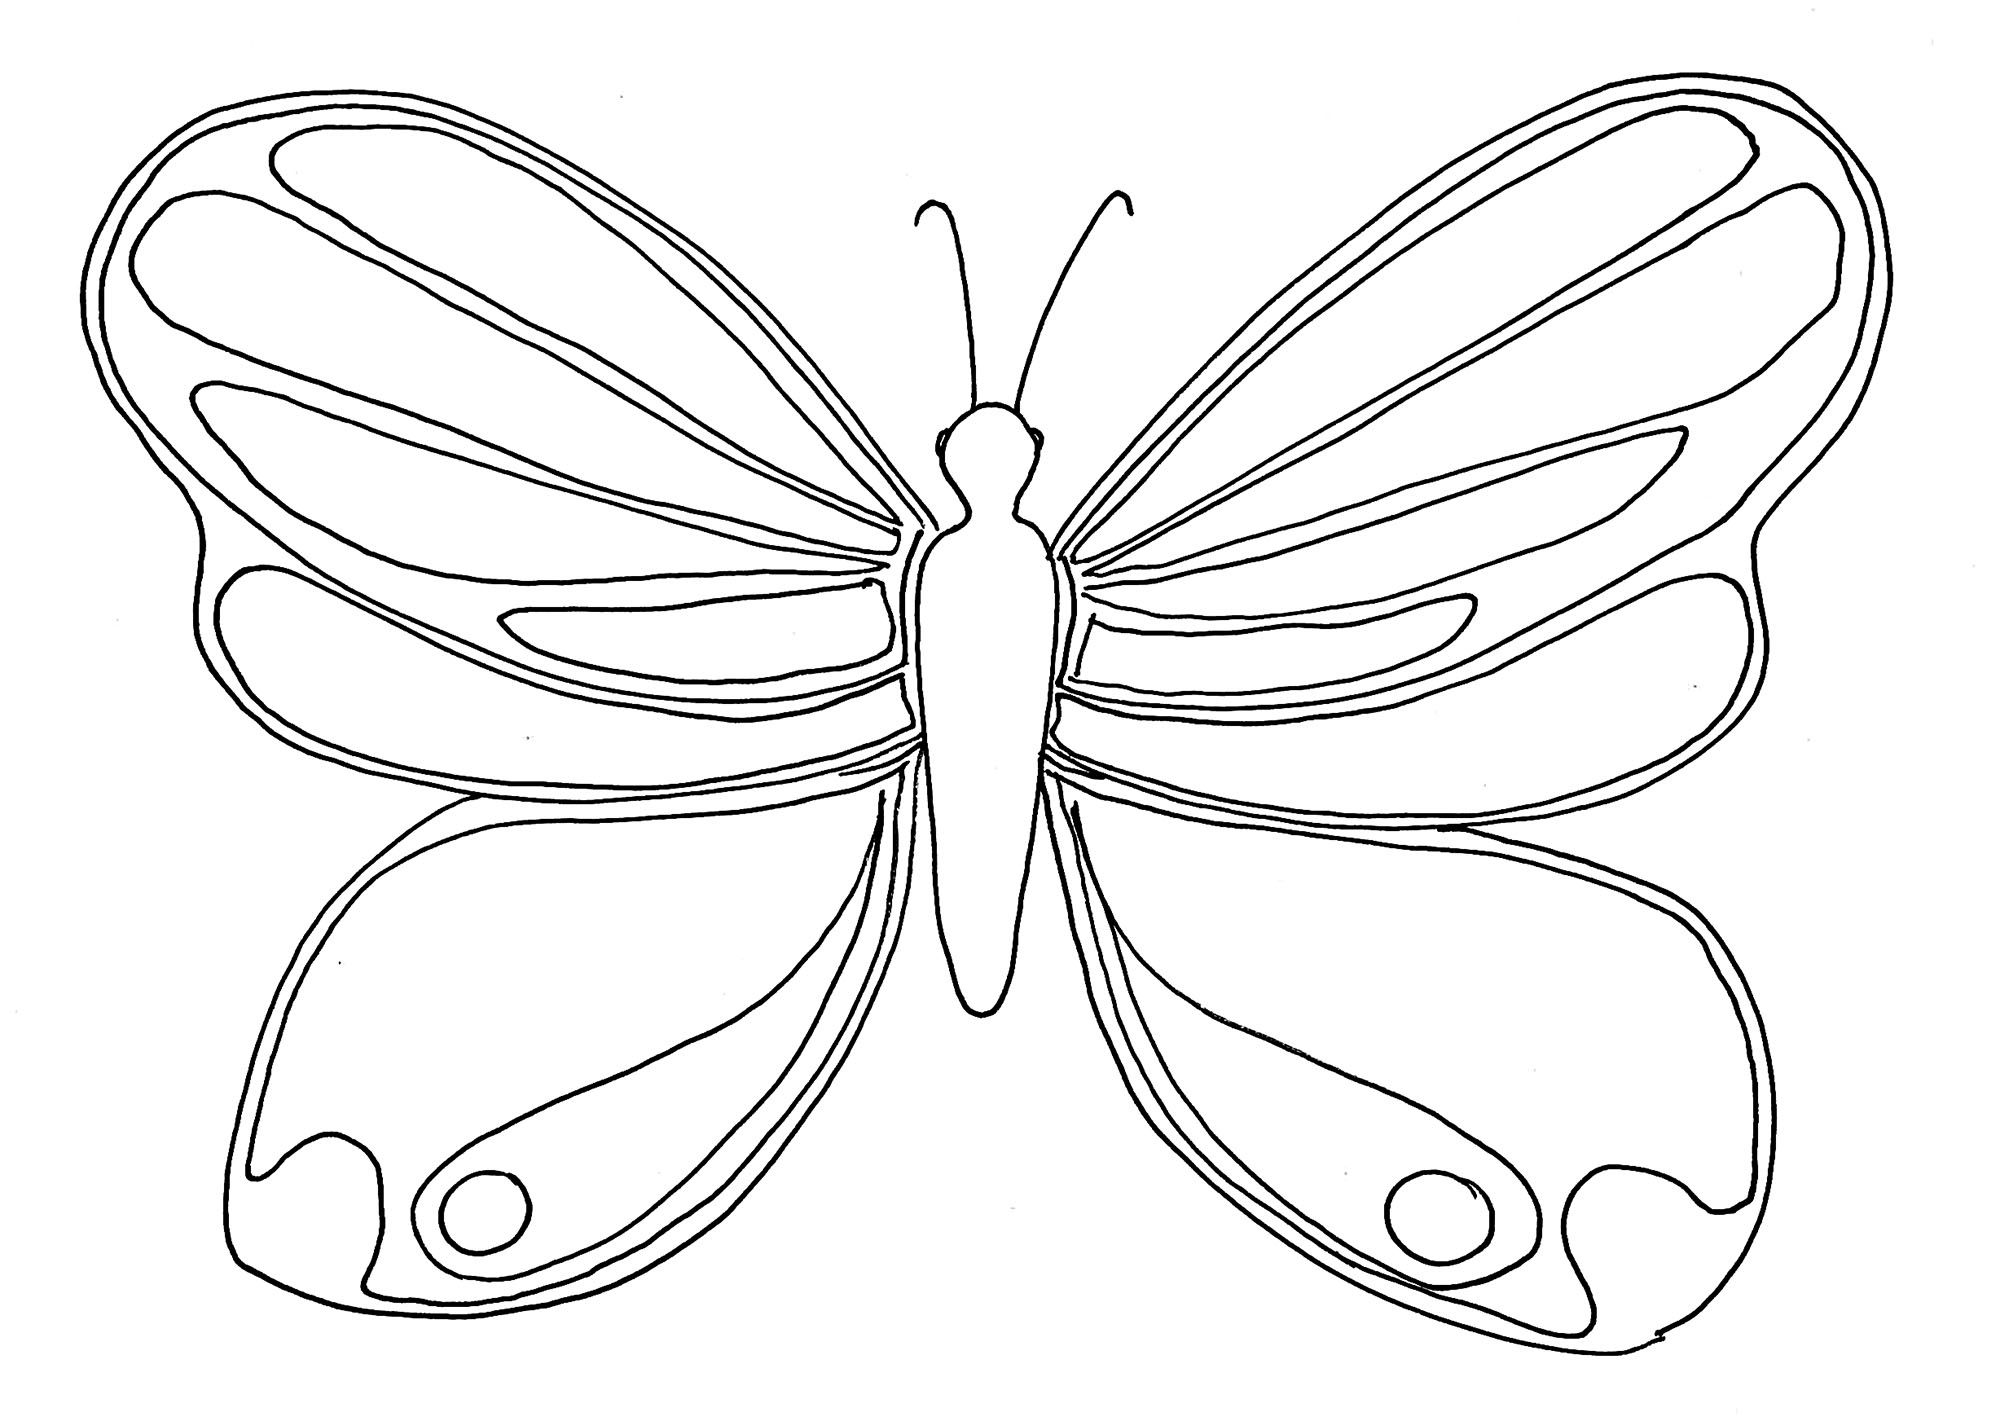 Simple Coloriage De Papillon - Coloriage De Papillons tout Dessin Papillon À Colorier